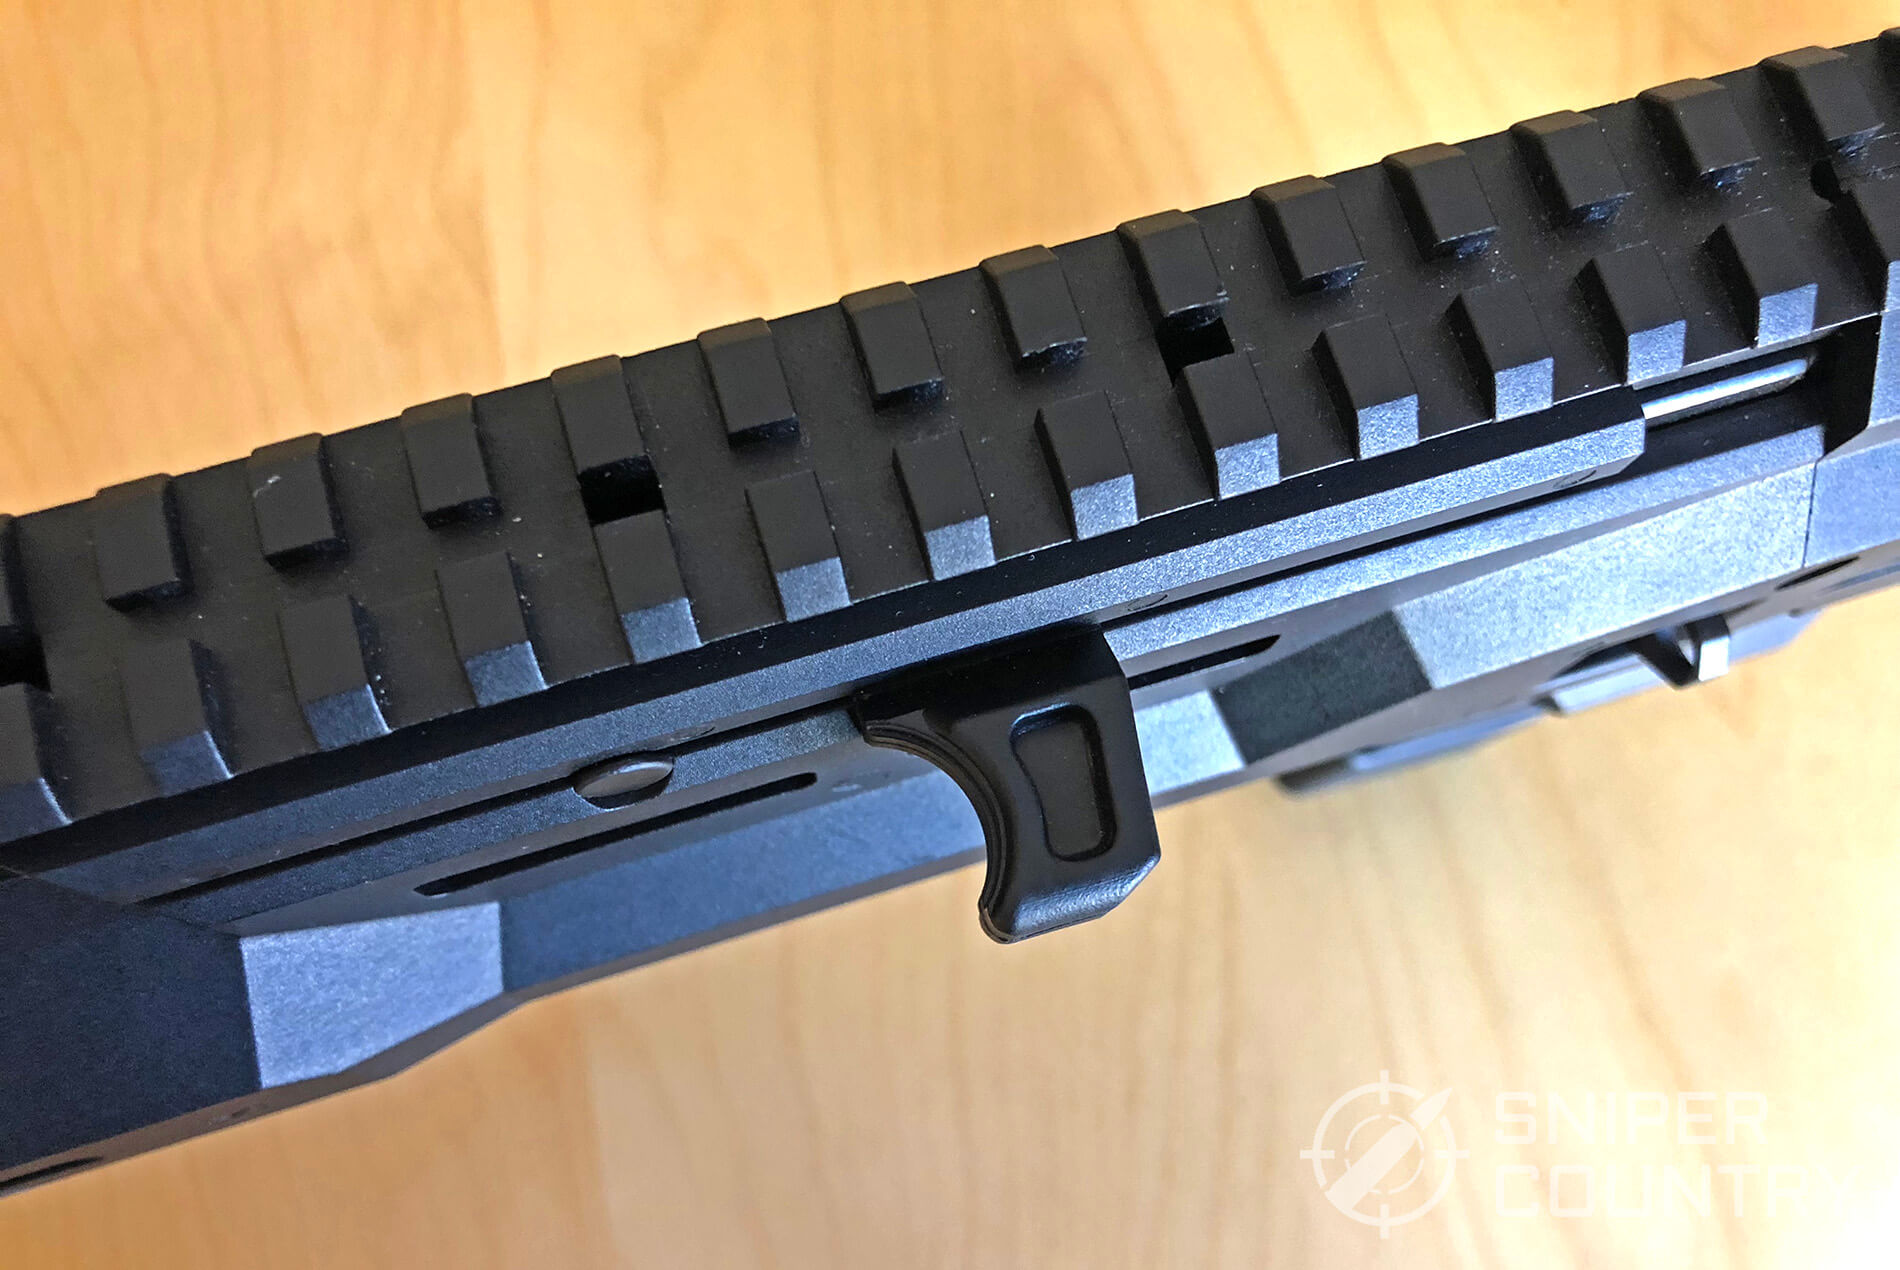 CZ Scorpion Evo 3 S1 Carbine charging handle